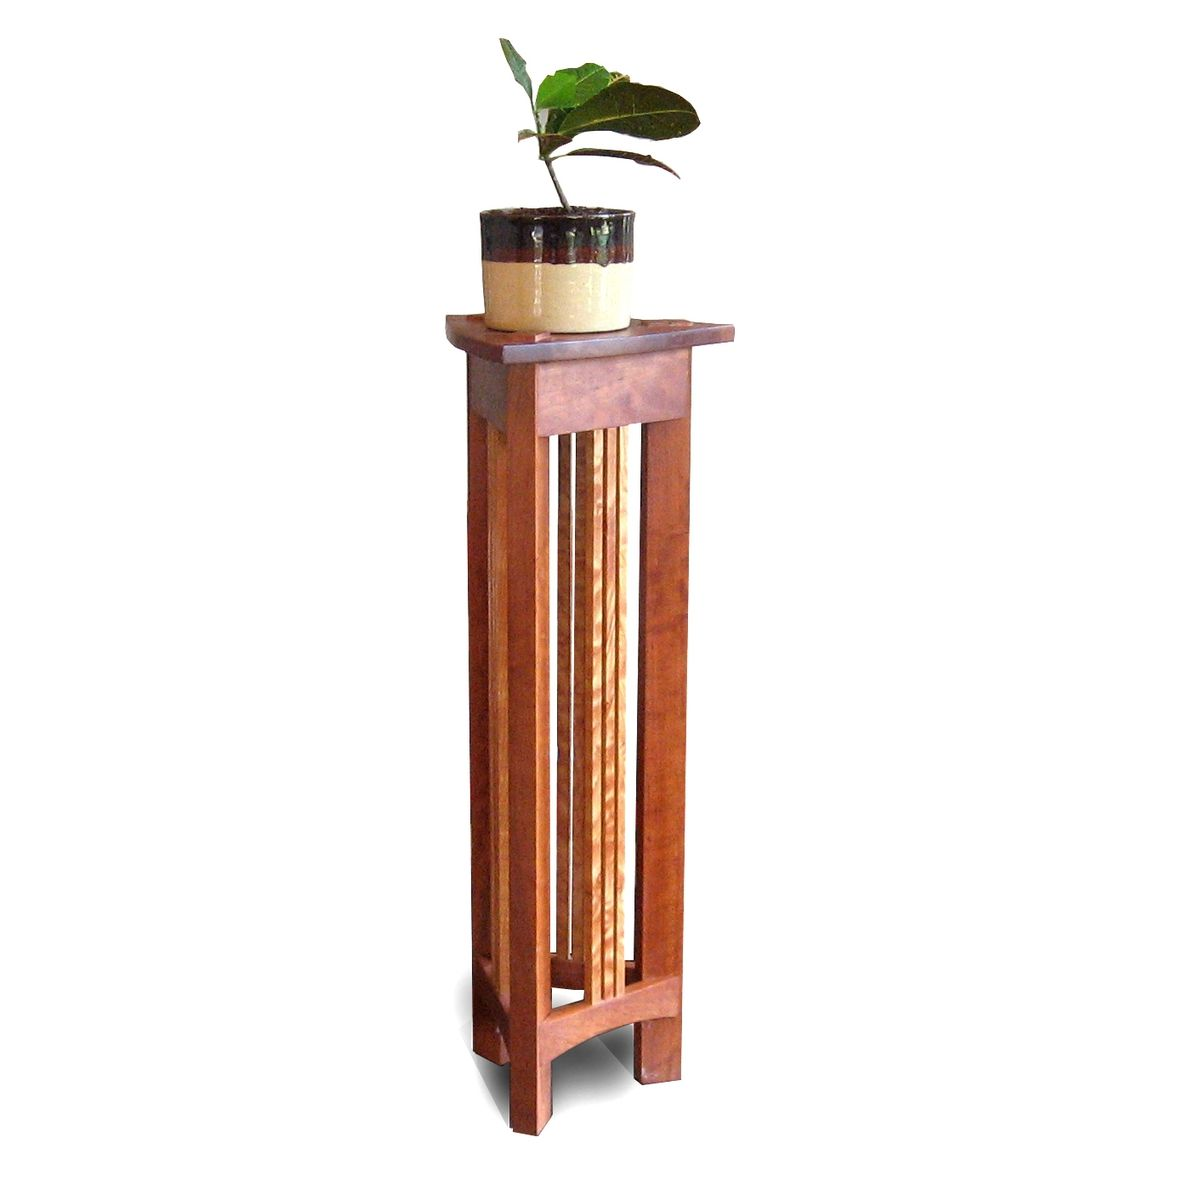 Wooden Iron Stand Designs : Hand made plant stand by mark love furniture custommade